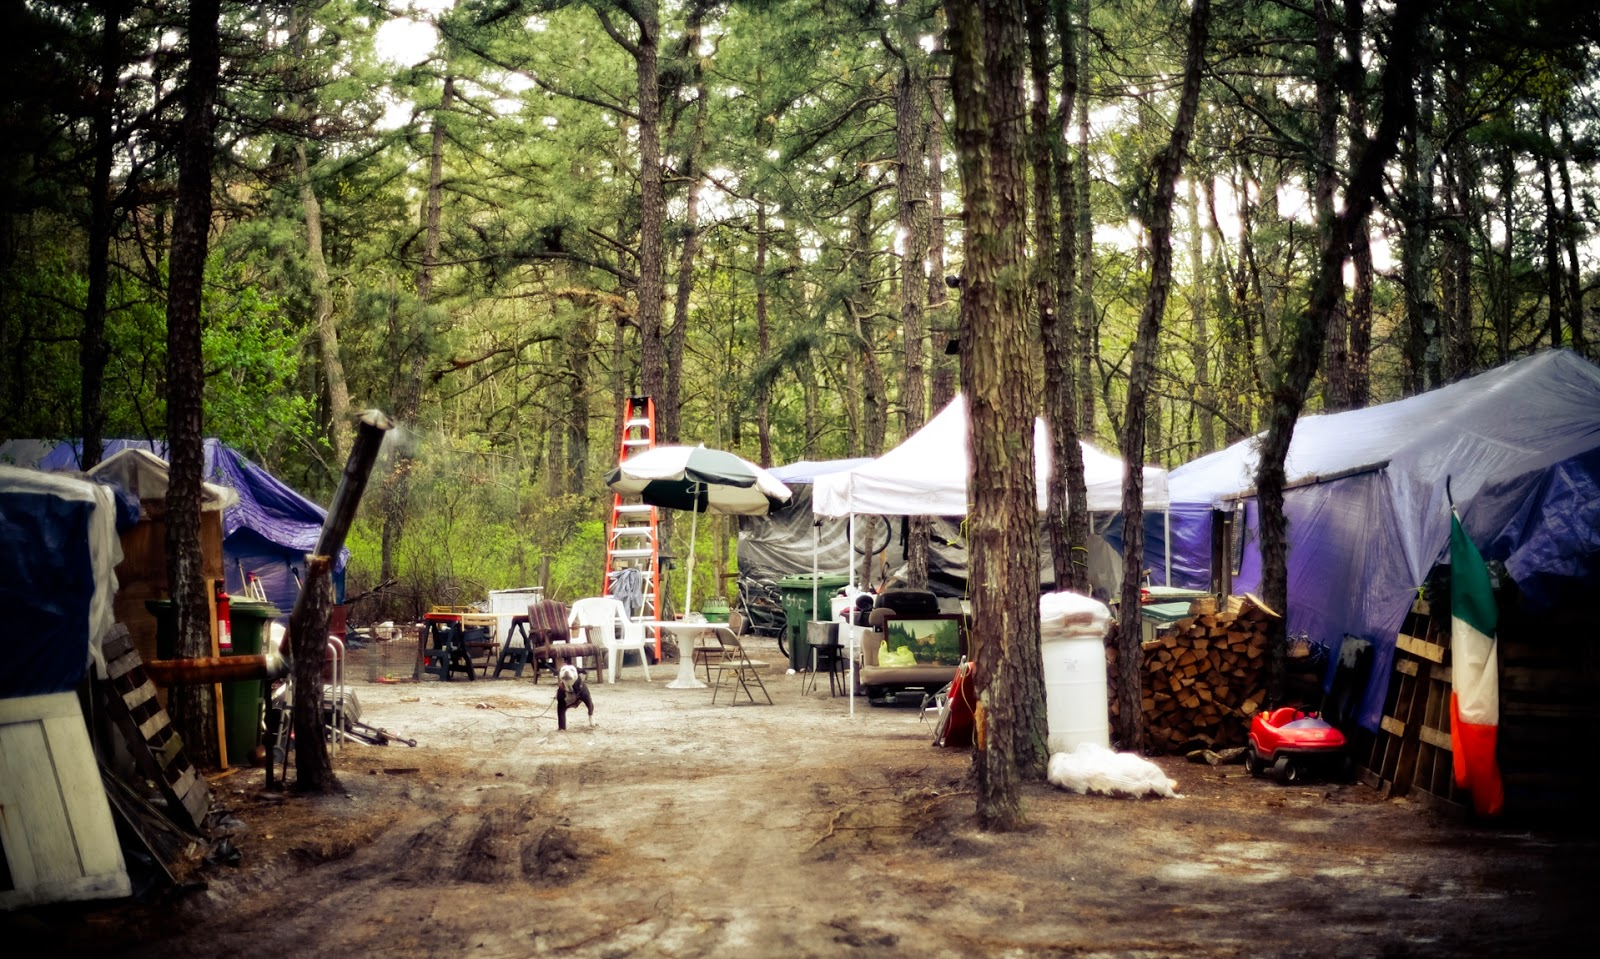 10/29/2014 & Cinemablographer: The Urban Planet and Tent Town USA